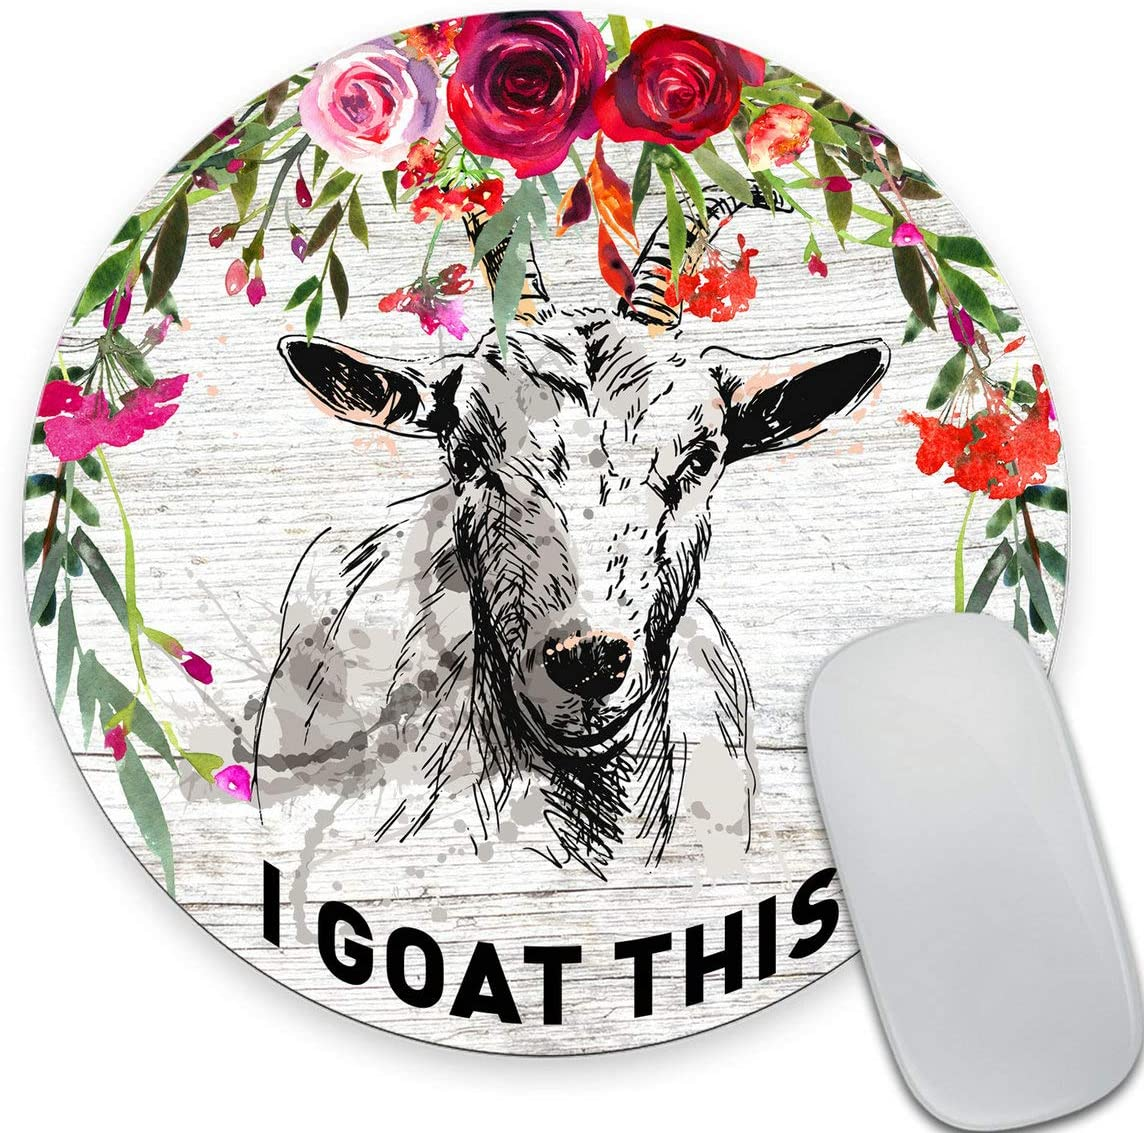 Smooffly I Goat This Quote Cute Round Mouse Pad, Office Desk Accessories, Goat Mouse Pad, Desk Decor, Funny Office Gifts,Vintage Colored Floral Circular Mouse Pads for Computers